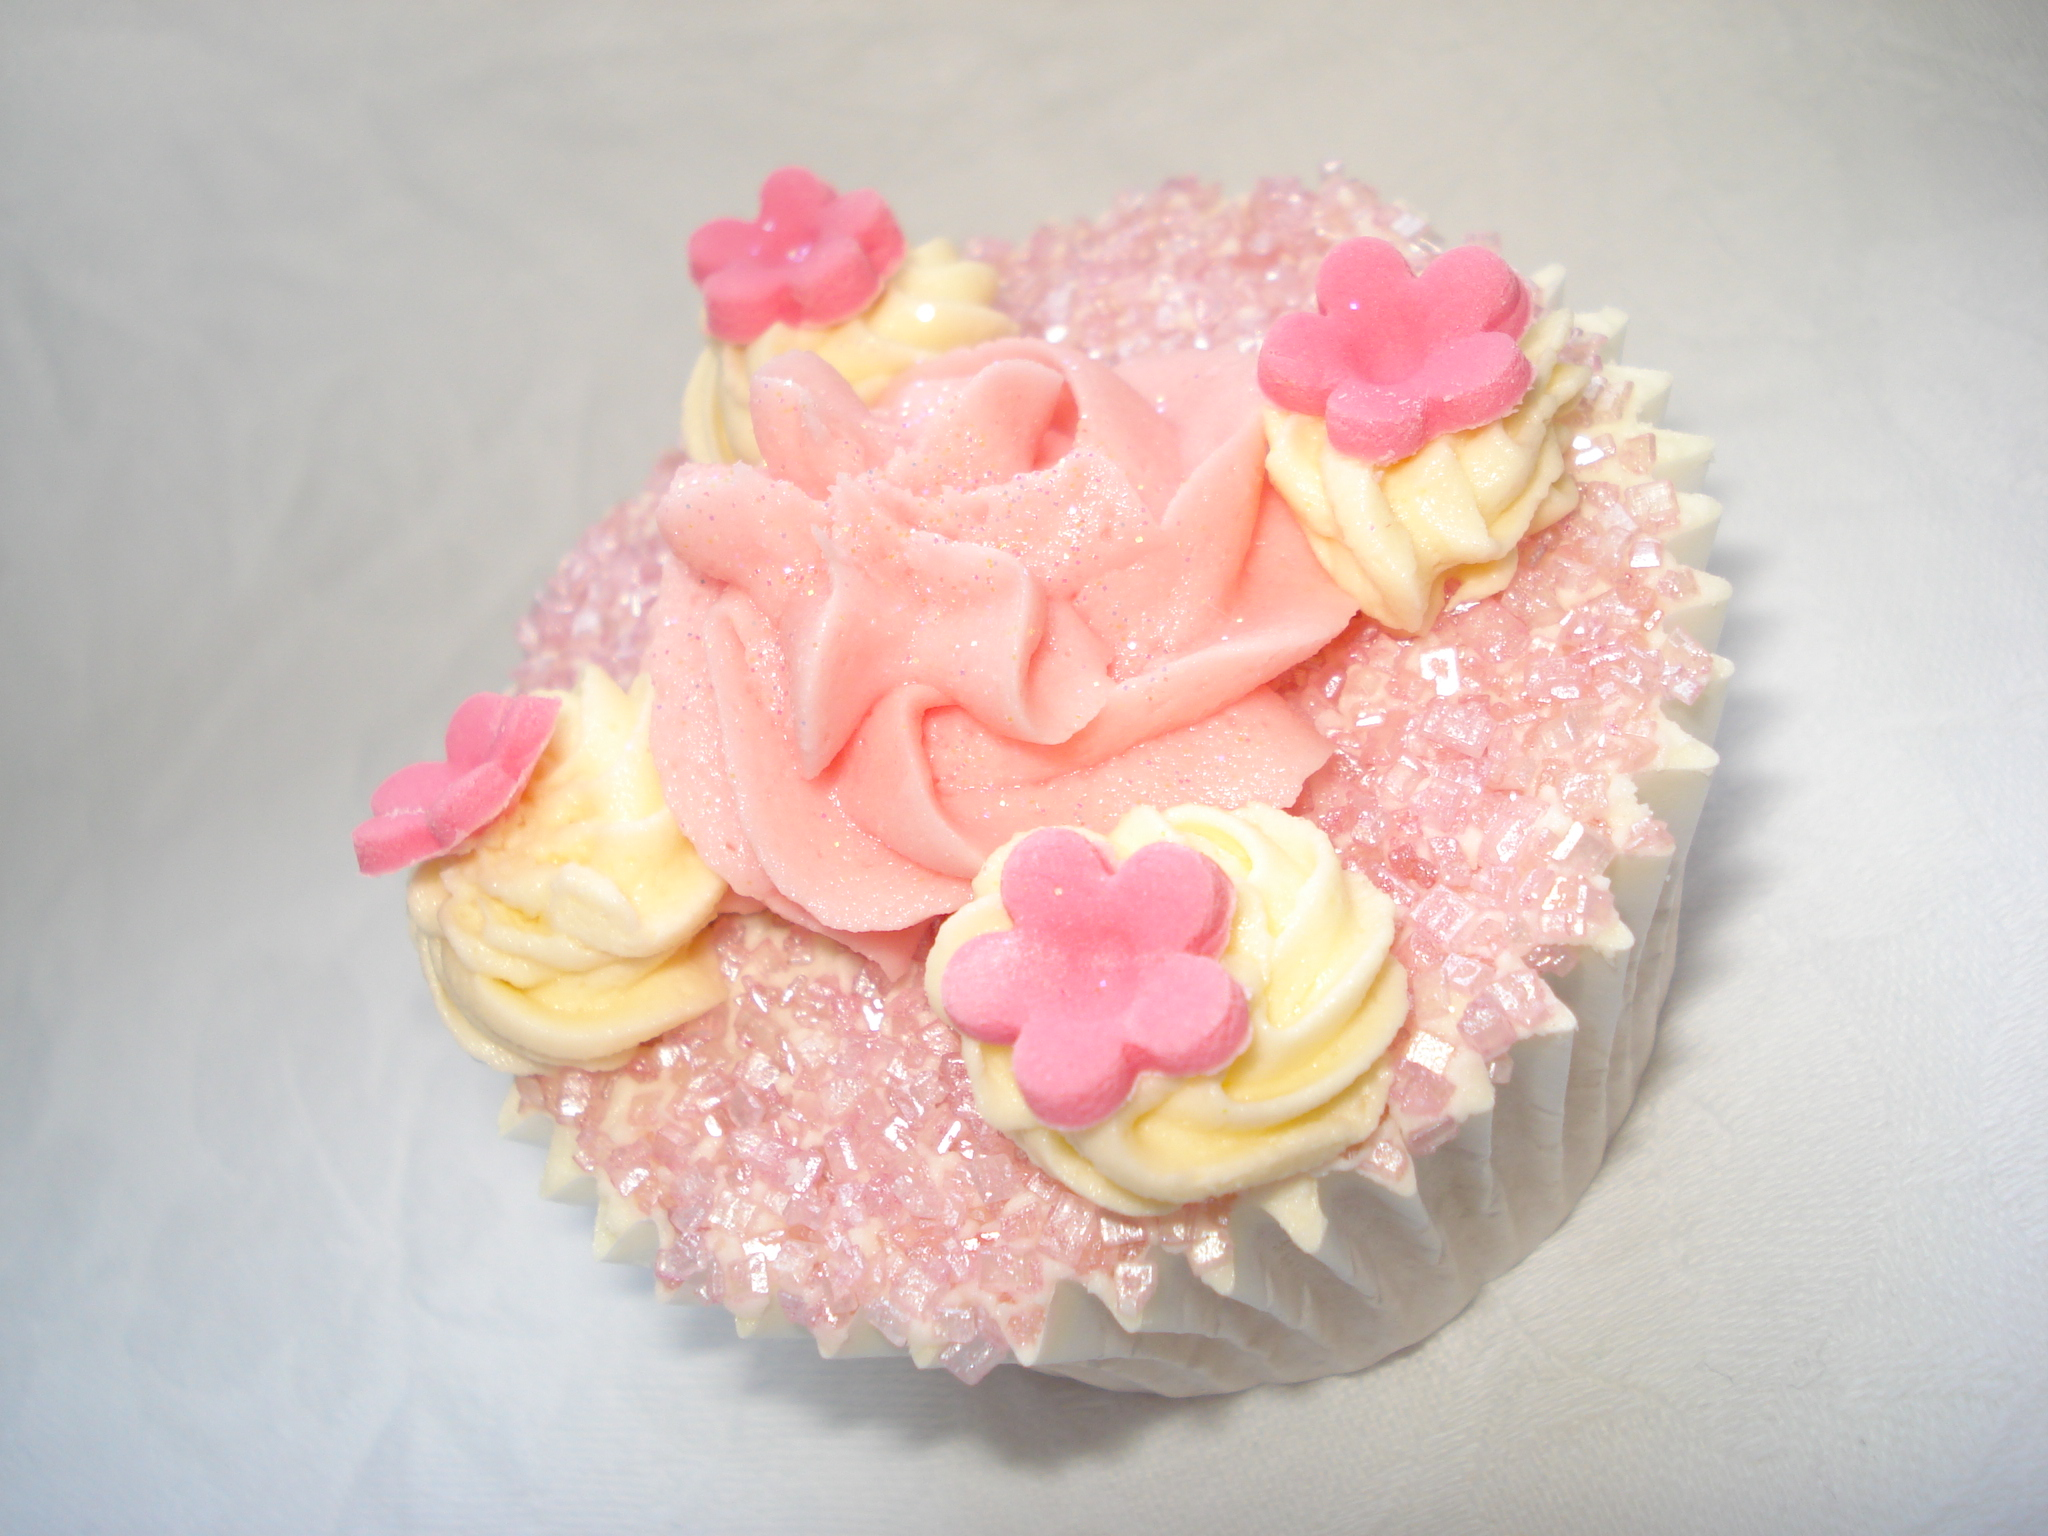 The pink fluffy cupcake